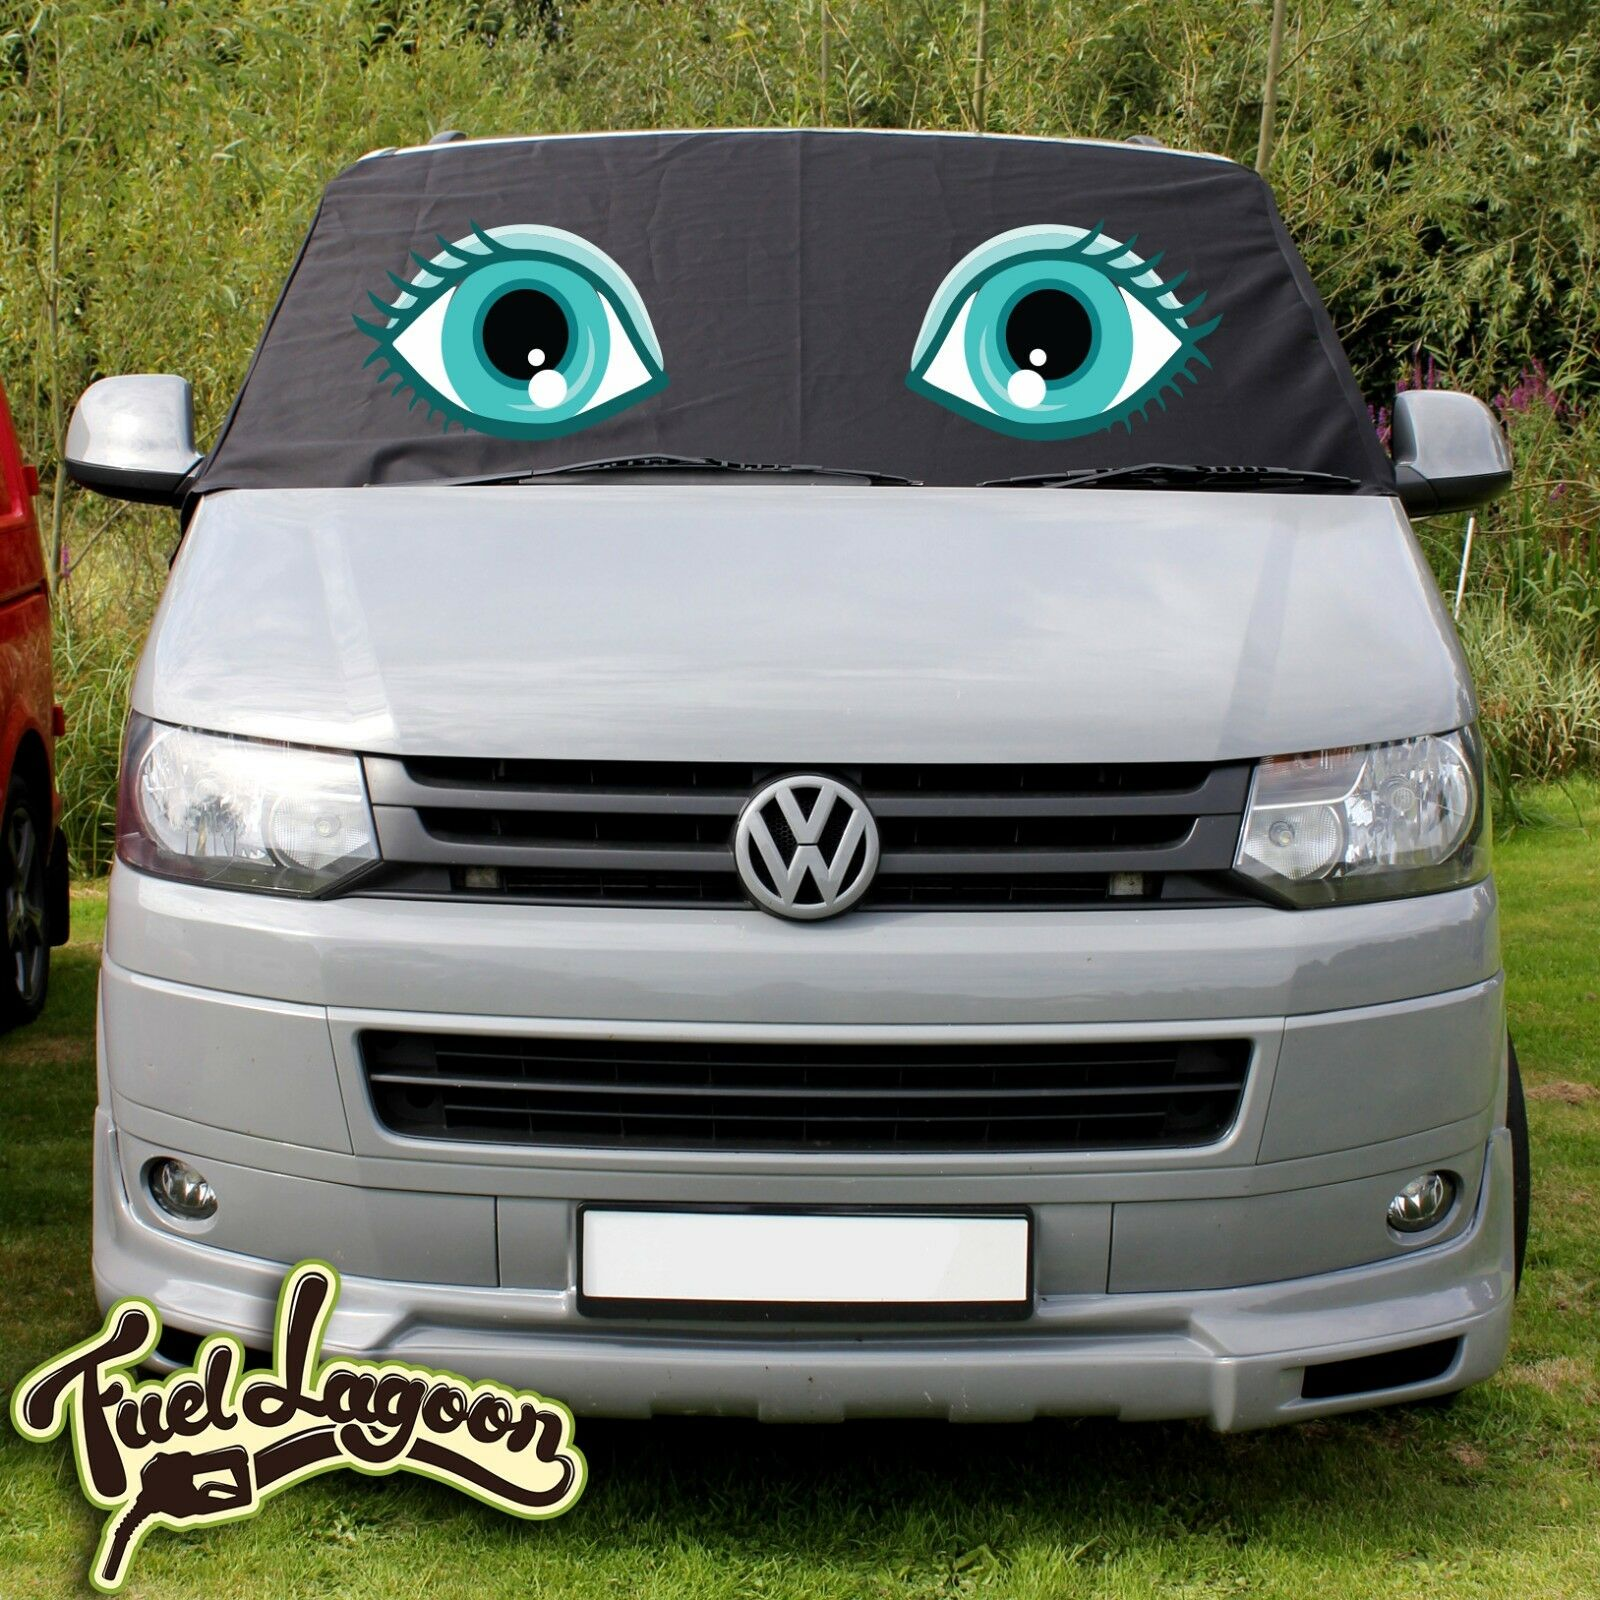 Vw Transporter T5 Window Screen Protector Covers Black Roller Blind Eyes Ebay - Vorhang Befestigung T5